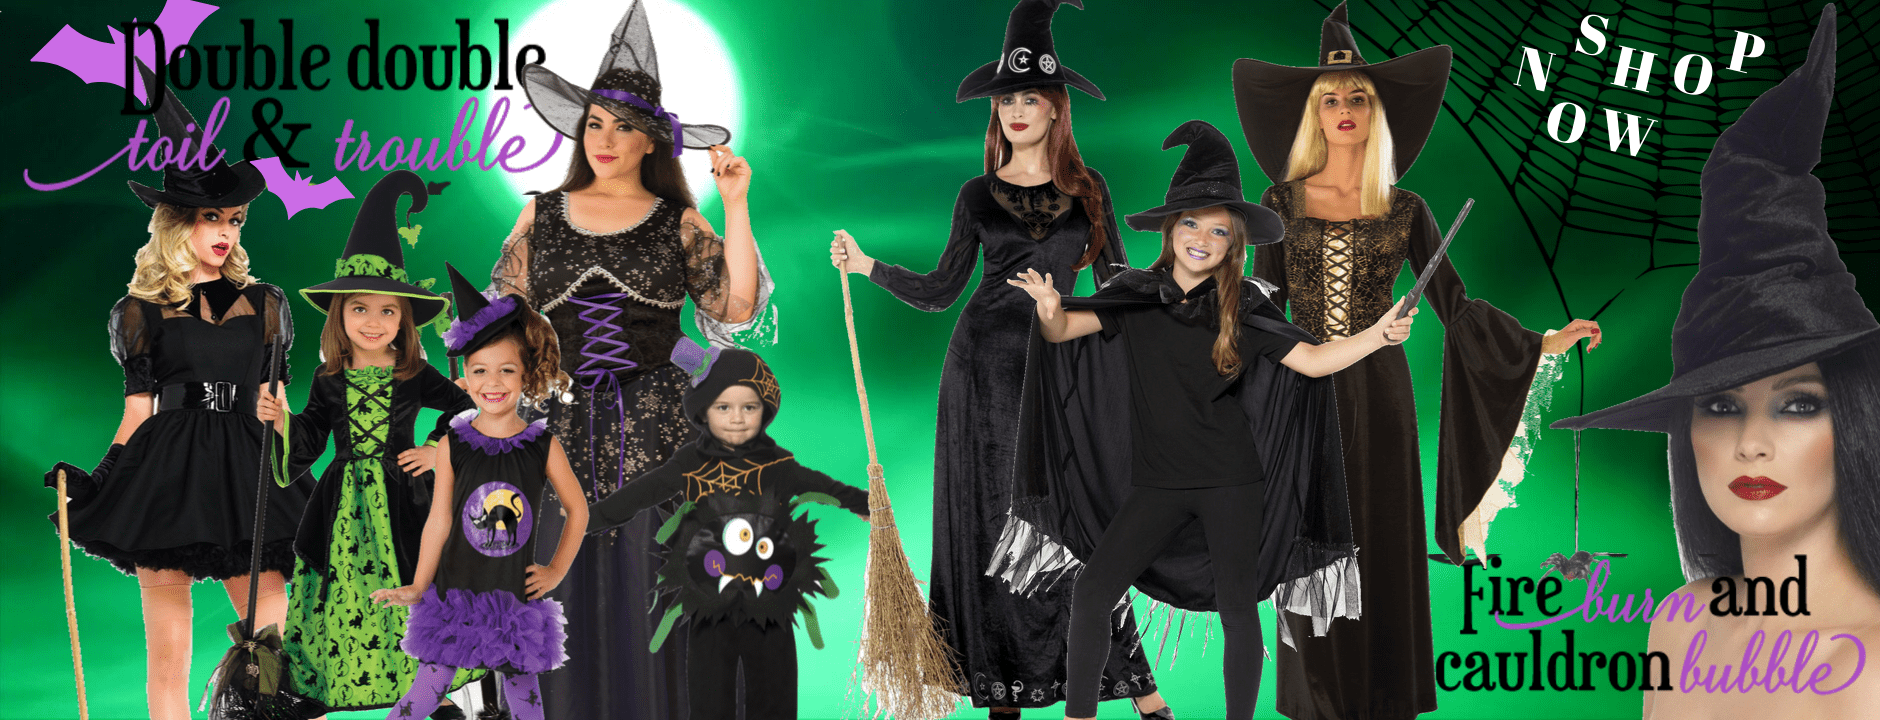 Witch Costumes Women Men Buy hire Children